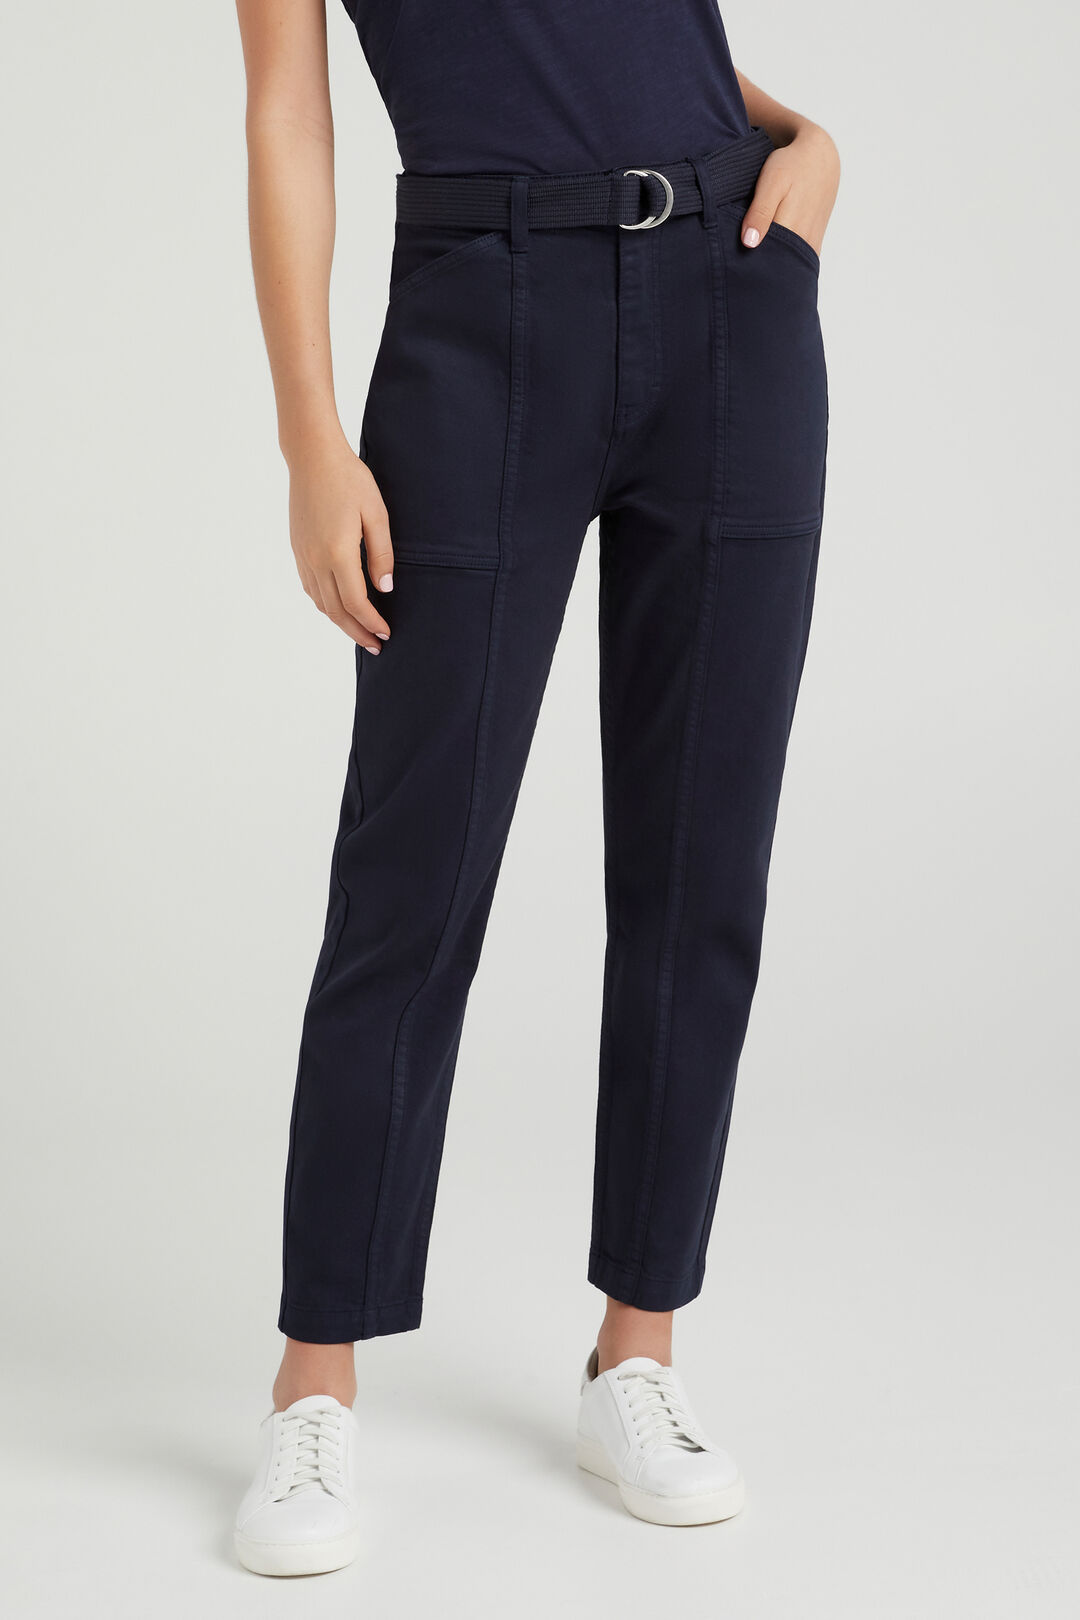 UTILITY BELTED PANT  FRENCH NAVY  hi-res